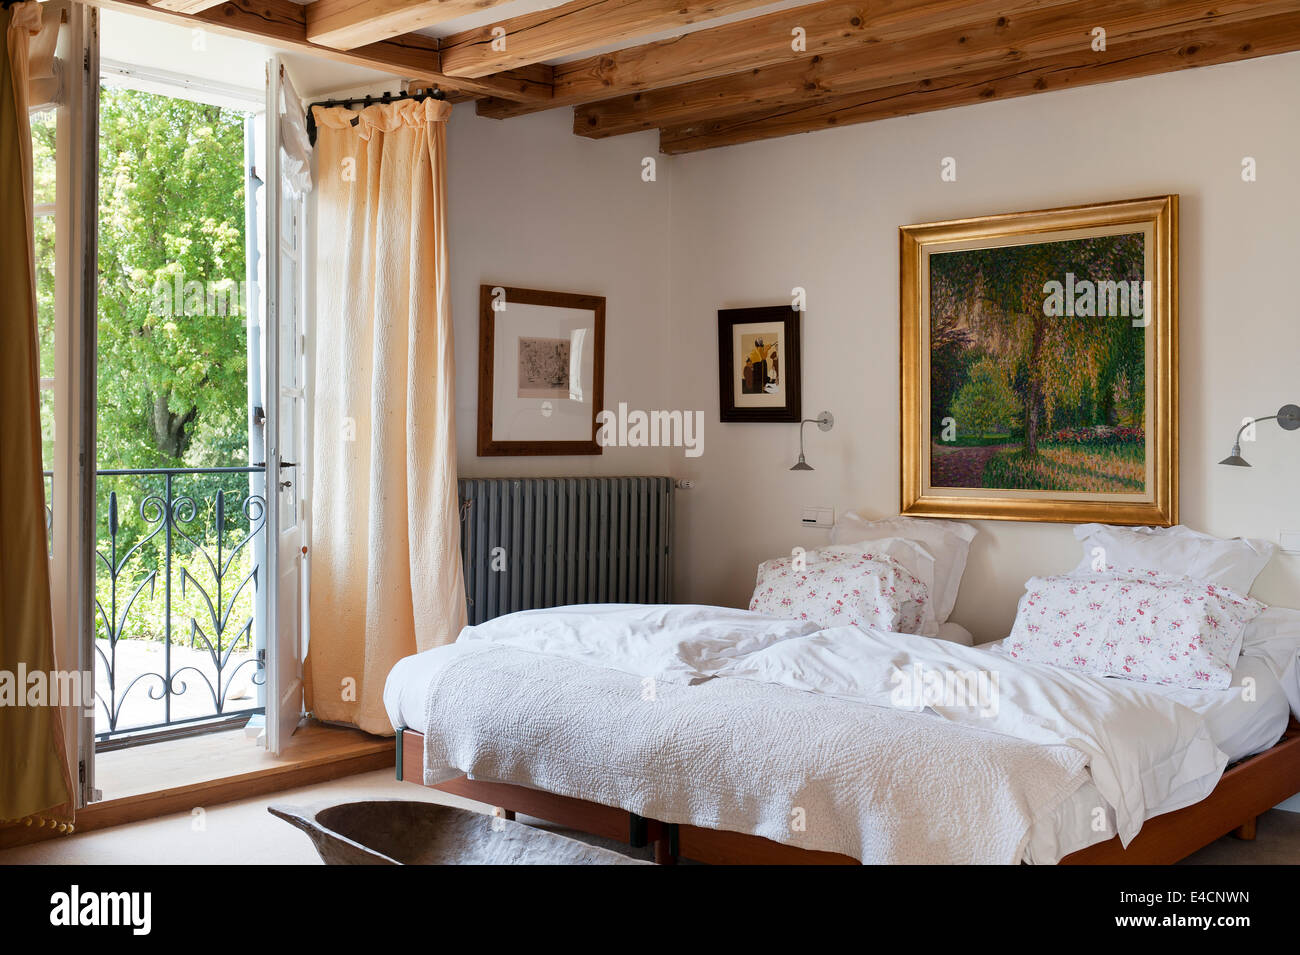 Gilt framed landscape painting on the wall of a bedroom with wooden ...